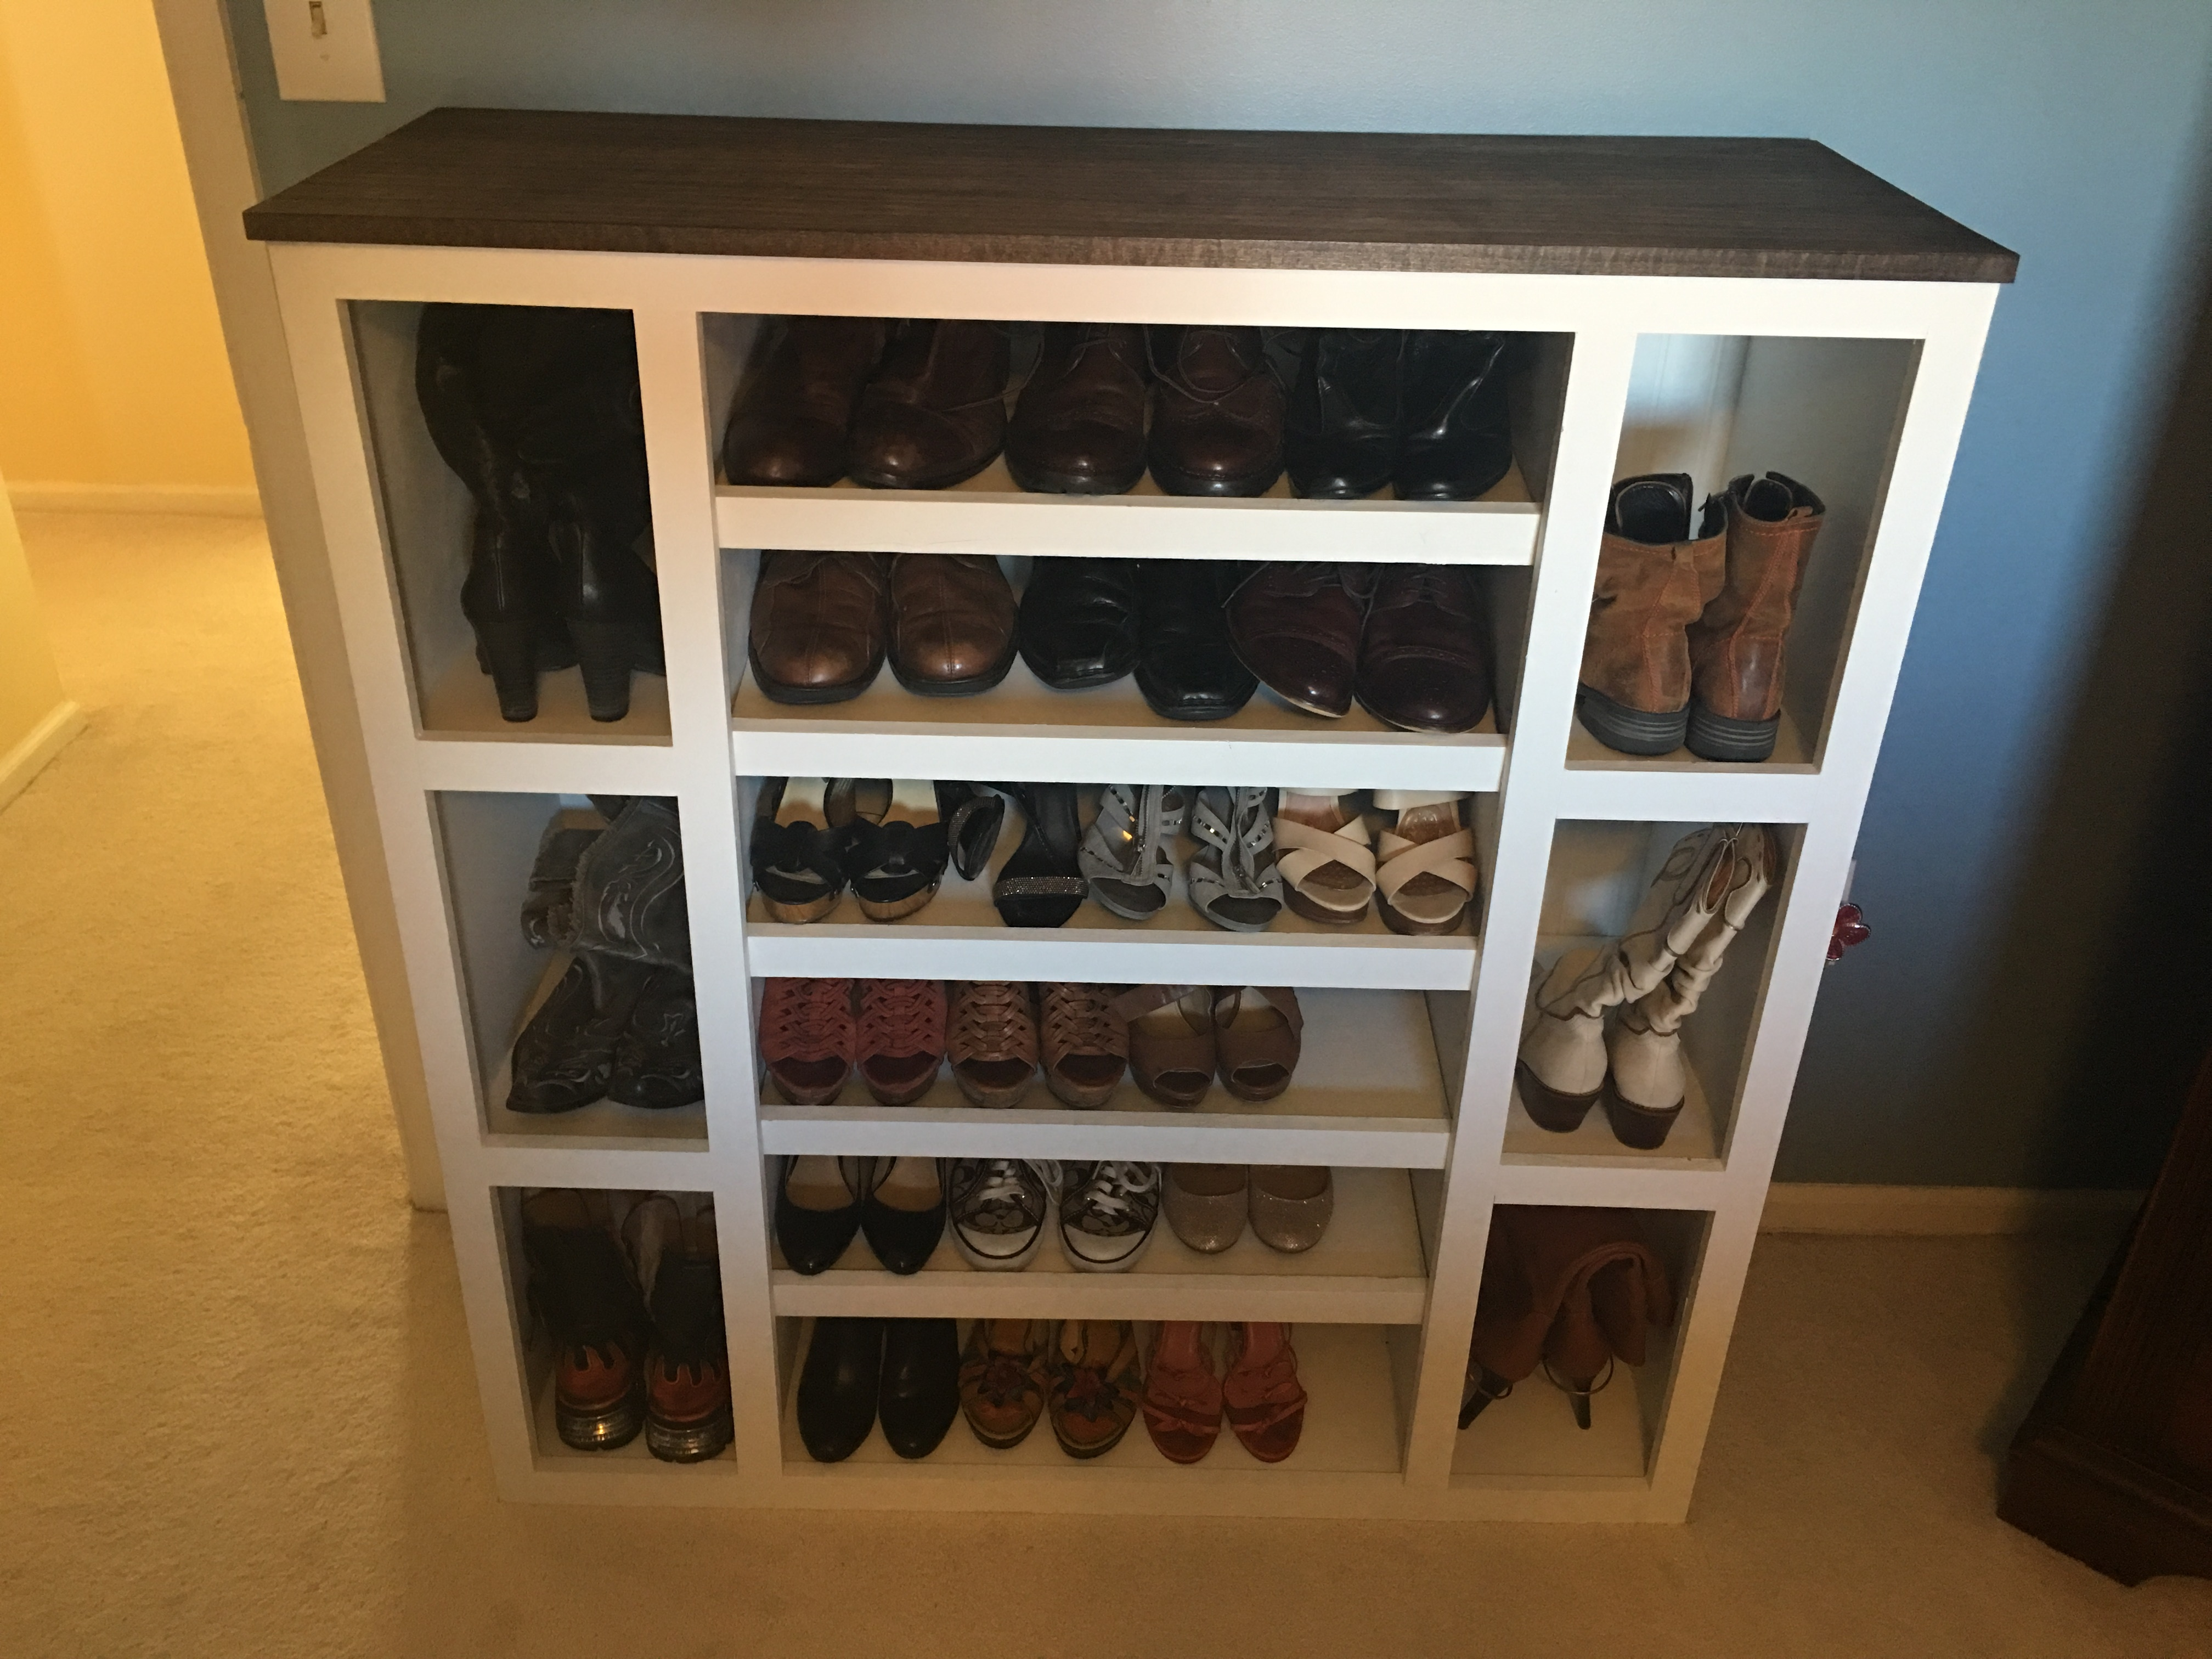 a closet of walk installation for in storage organizer software closetmaid ideas space shelving easy to maid furniture design how shoe custom closets systems size organize shelves hardware savers full shelftrack